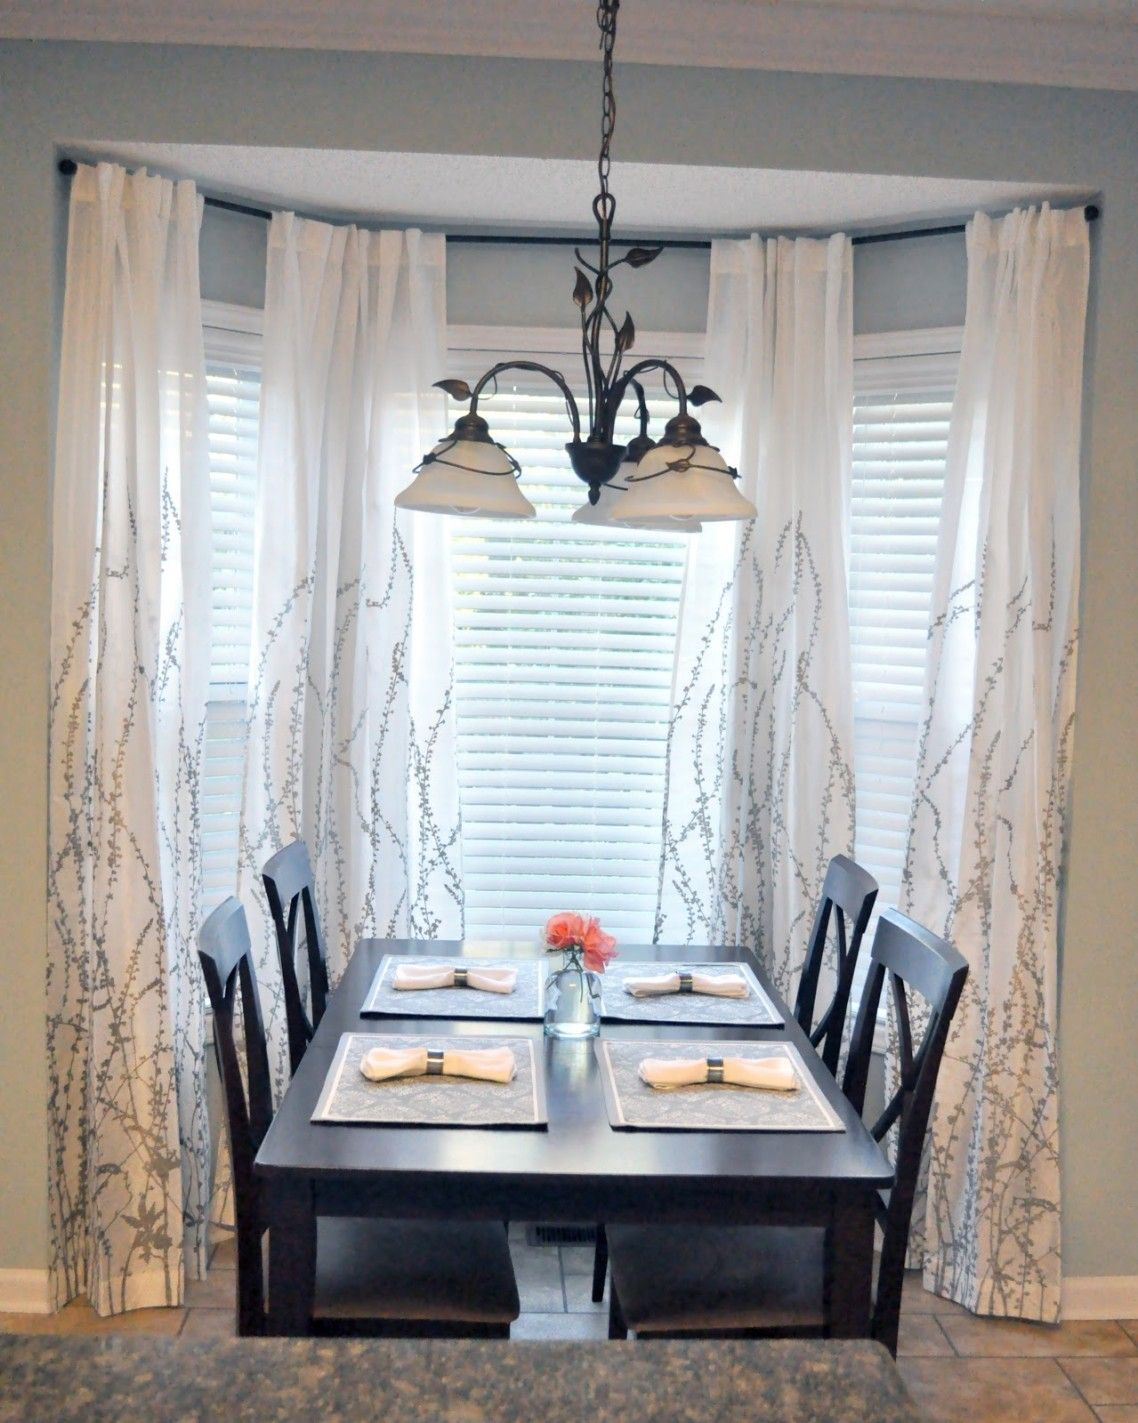 Panel Curtain Luxury White Bay Window S Window Treatments